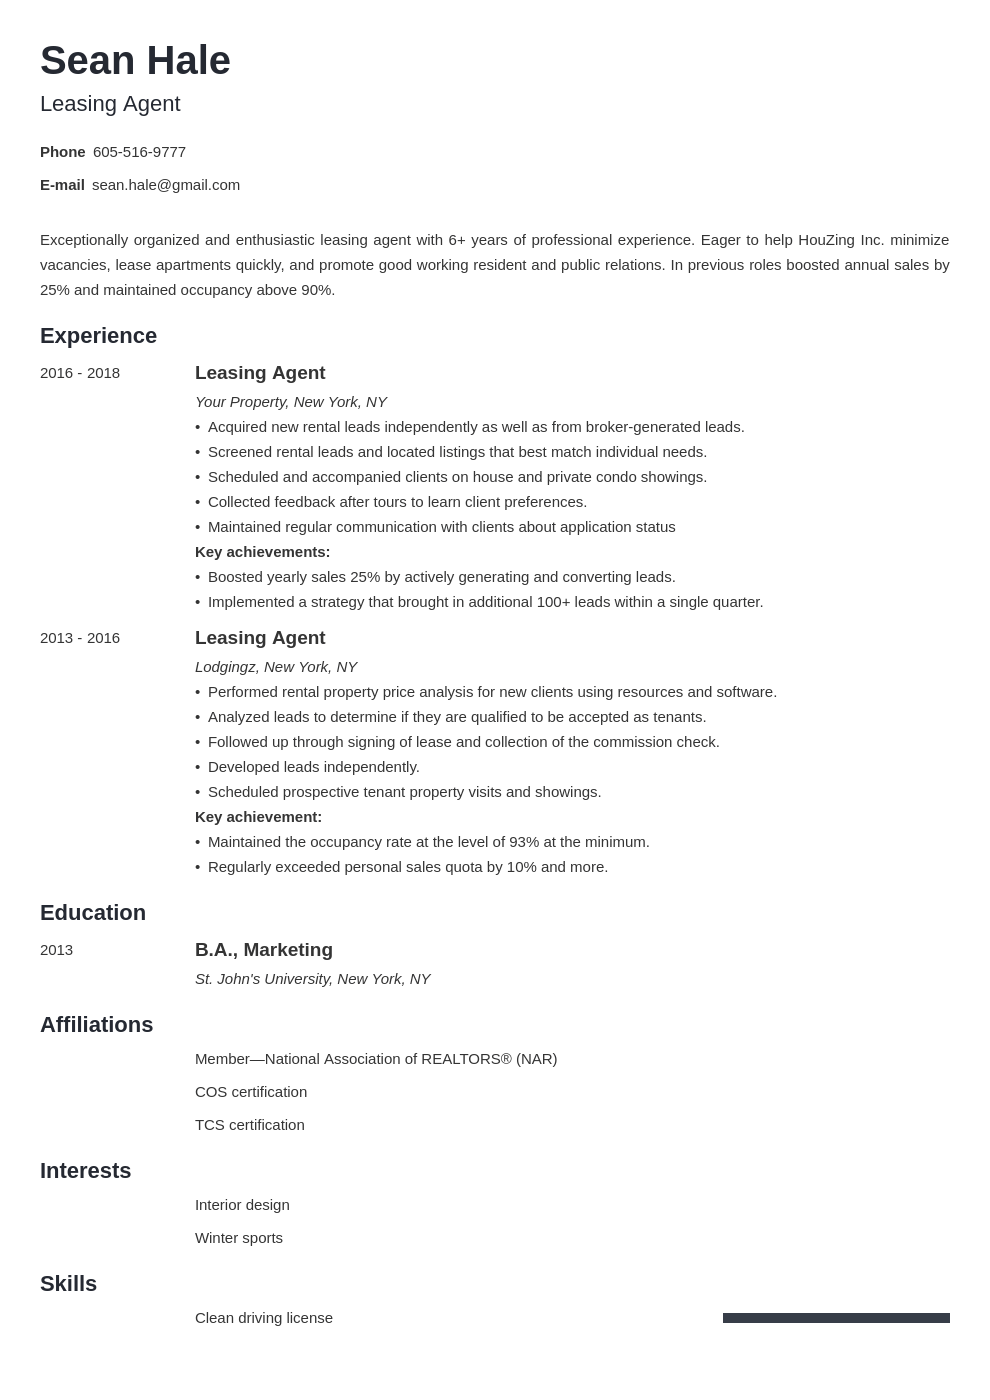 leasing agent resume example template minimo